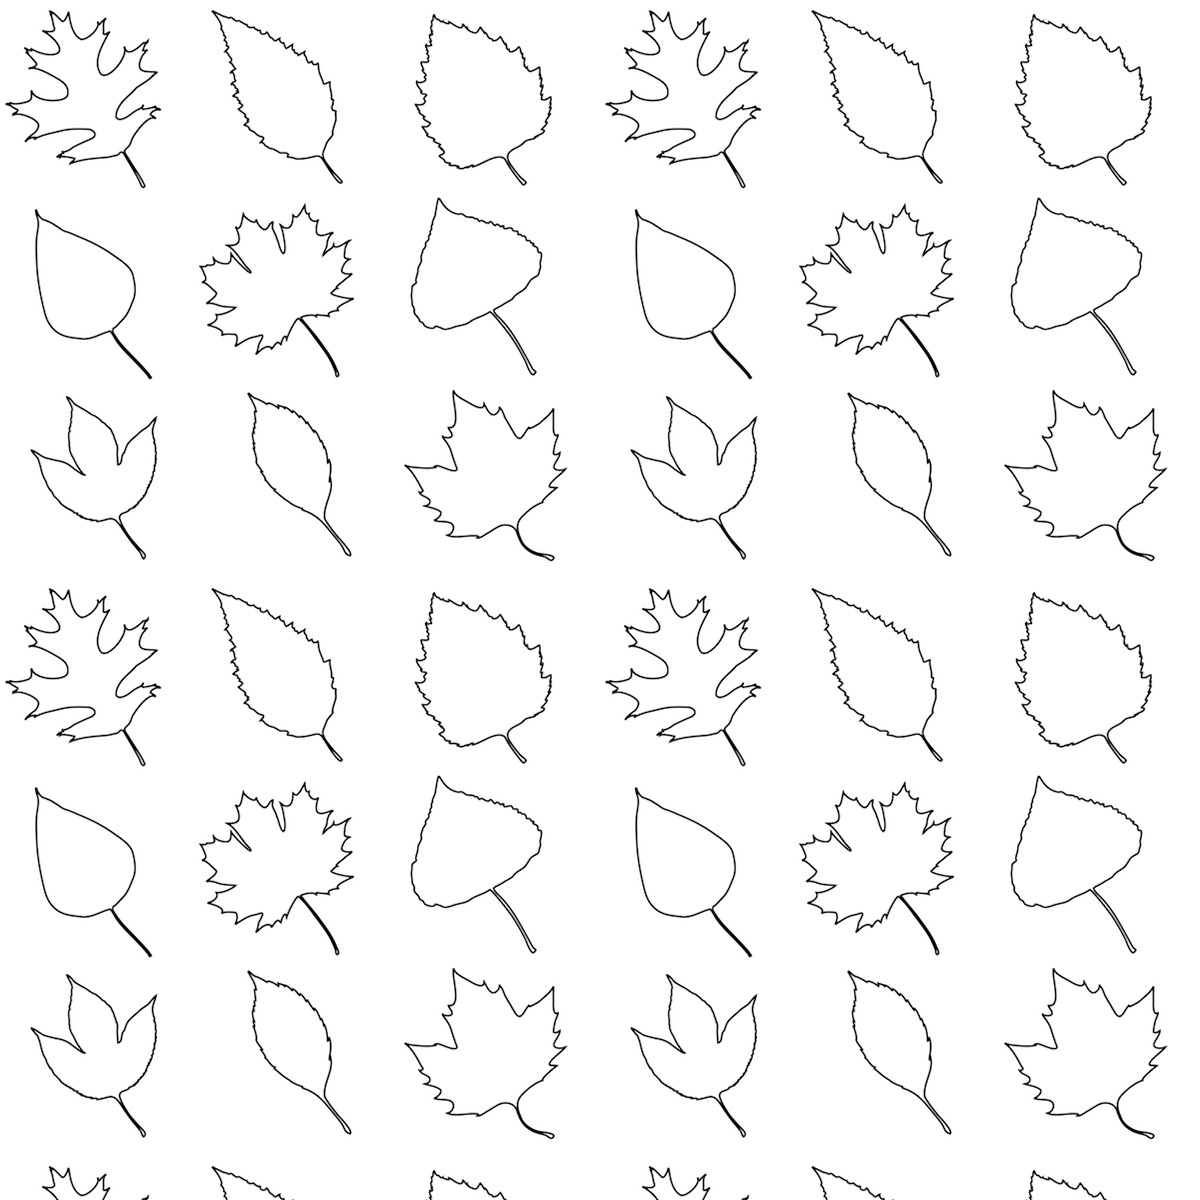 printable patterns to colour free printable geometric coloring pages for adults patterns printable colour to